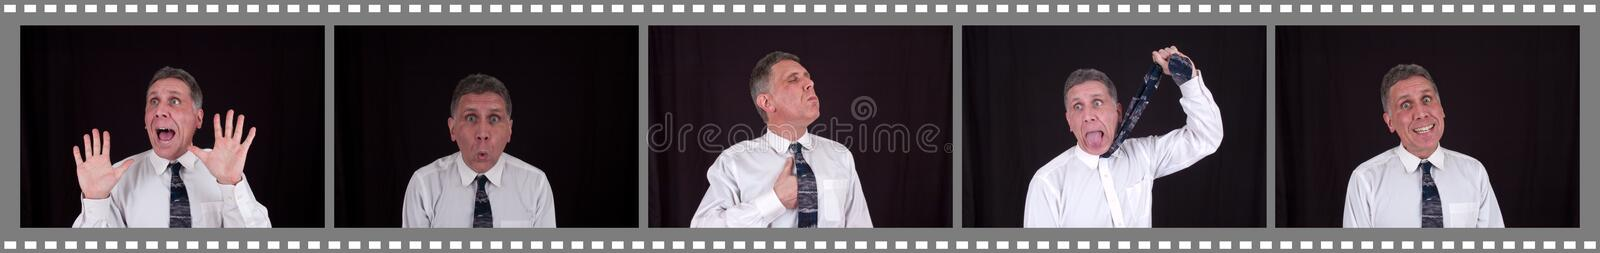 Download Funny Man In Shopping Mall Photo Booth Stock Image - Image: 19106605